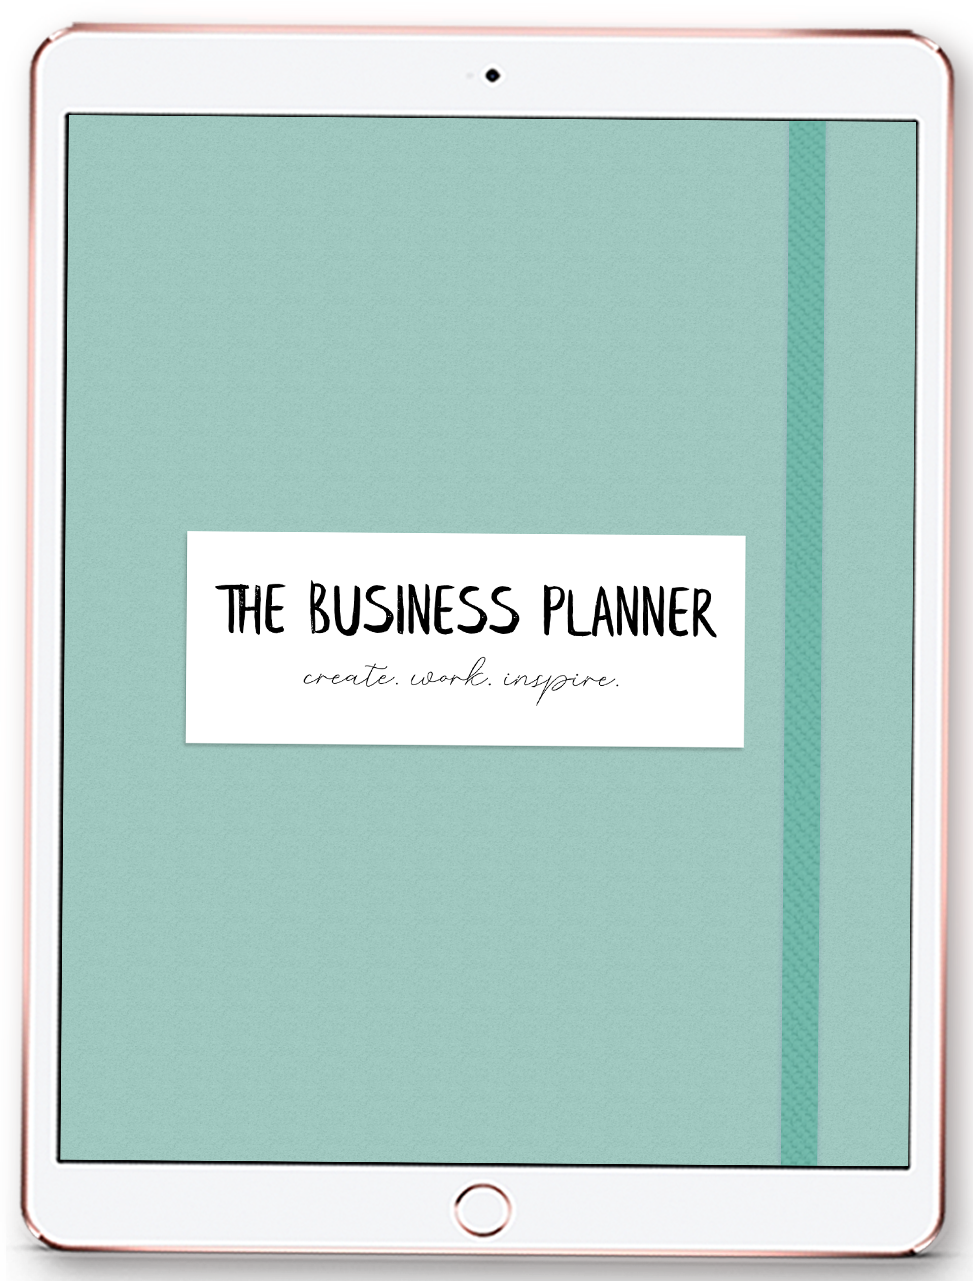 Design Your Ideal Business - Organize your small business all in one place.